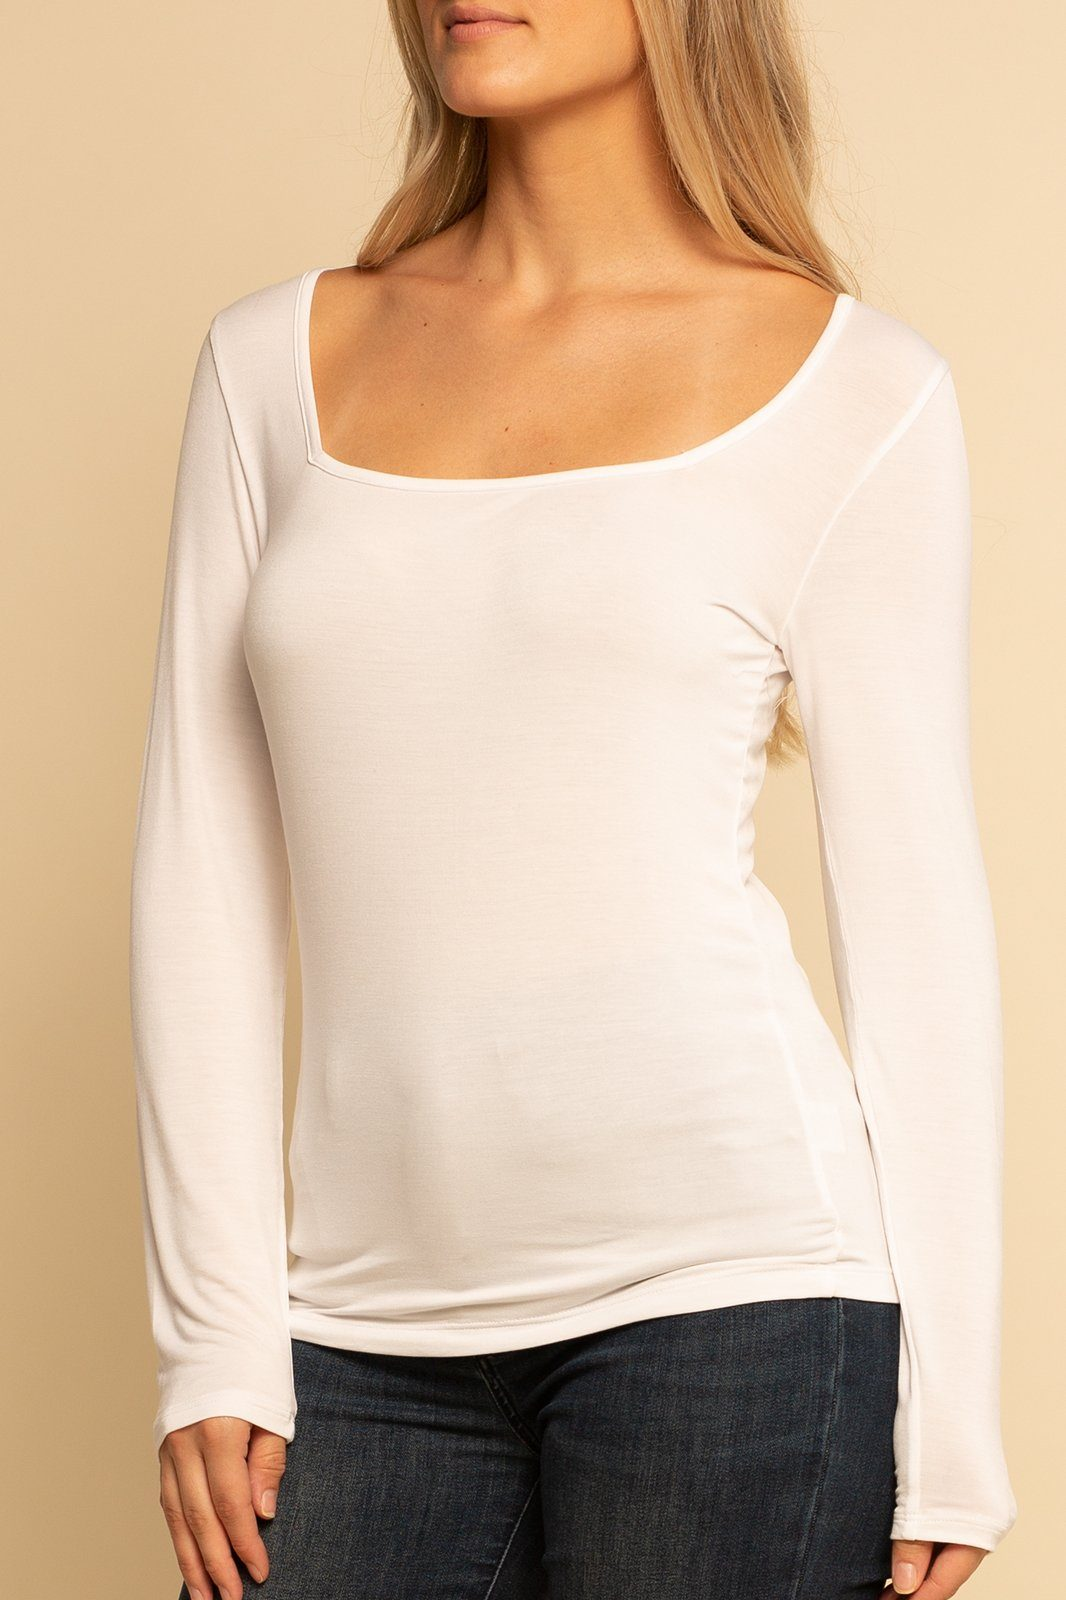 Square Neck Top - White - Shore